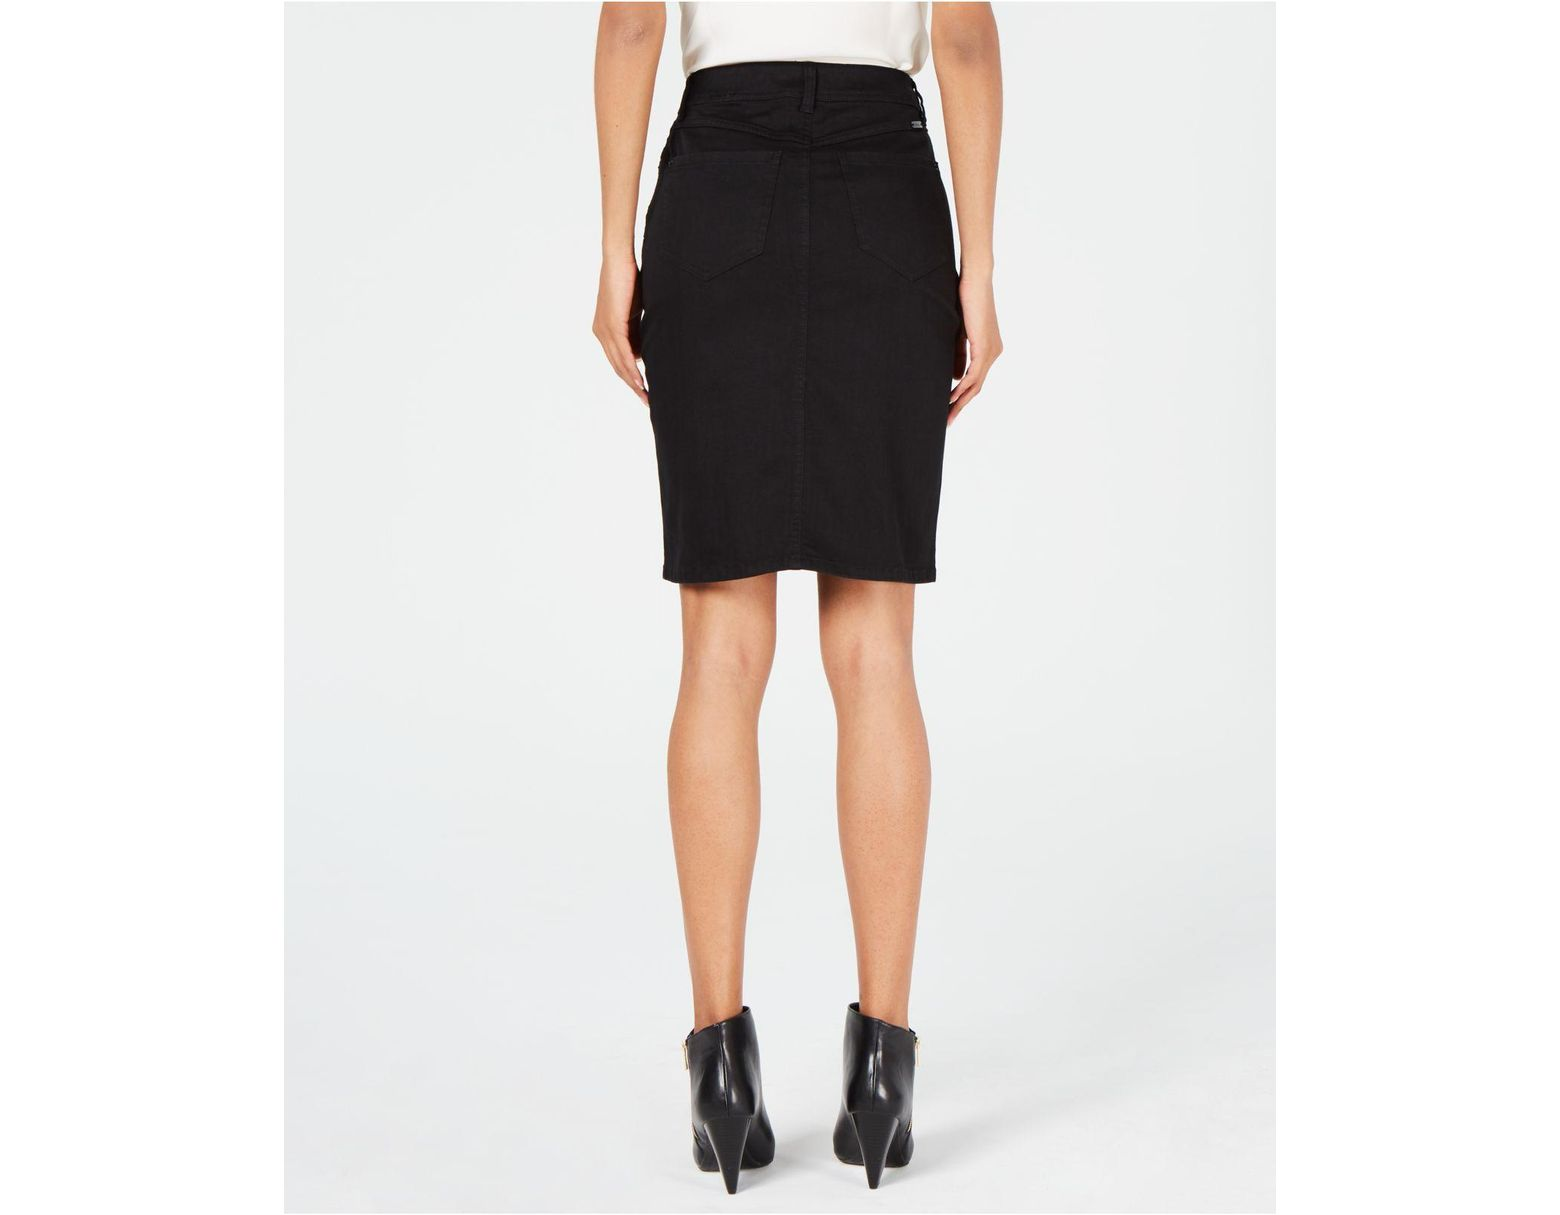 3b20de363 INC International Concepts I.n.c. Button-front Jean Skirt, Created For  Macy's in Black - Lyst